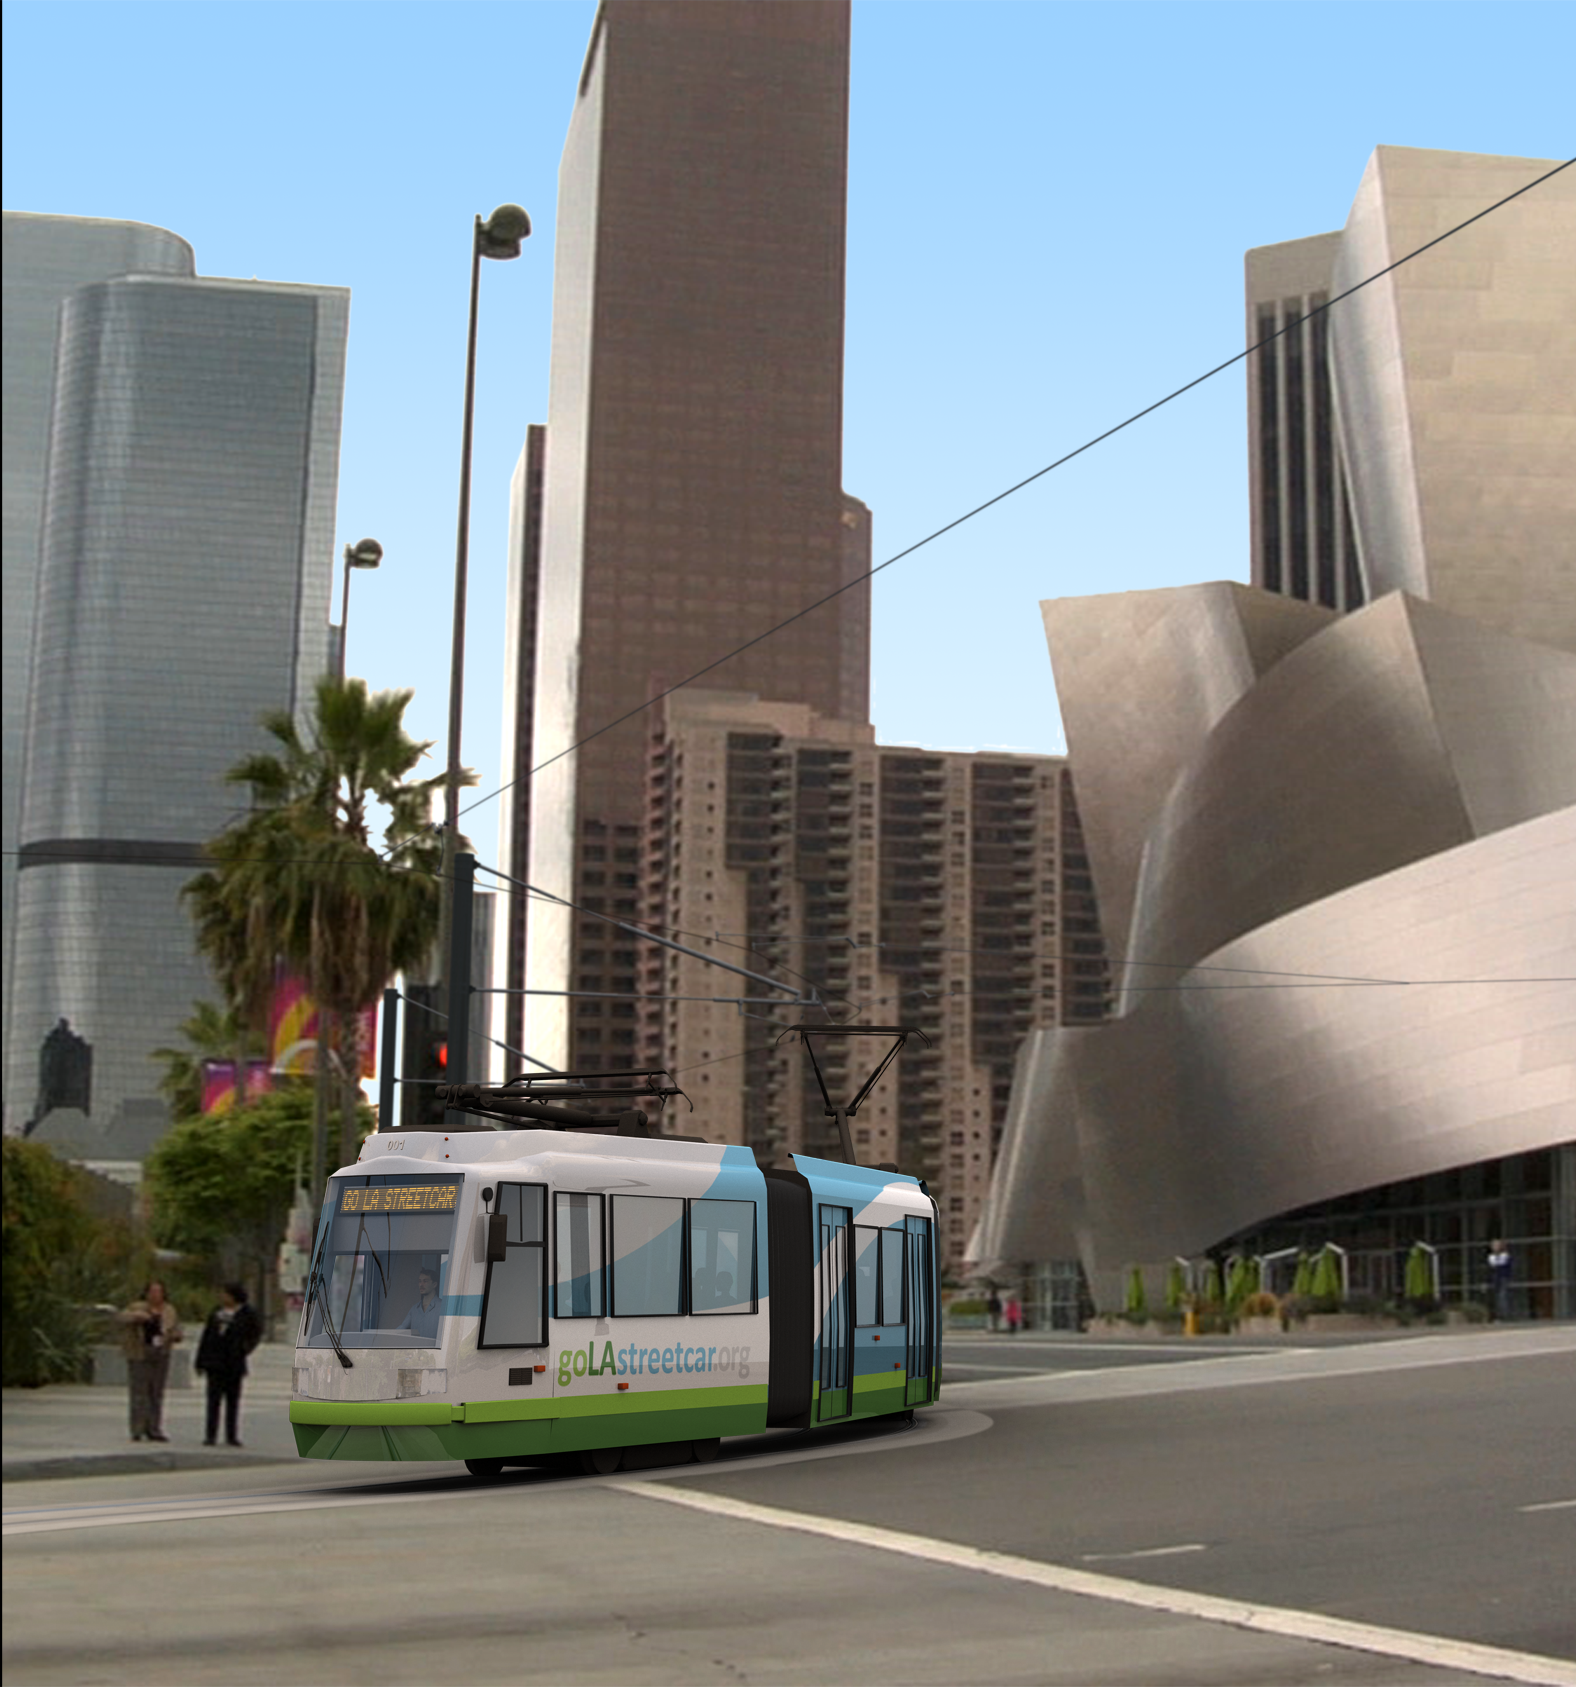 Disney Concert Hall with LA Streetcar